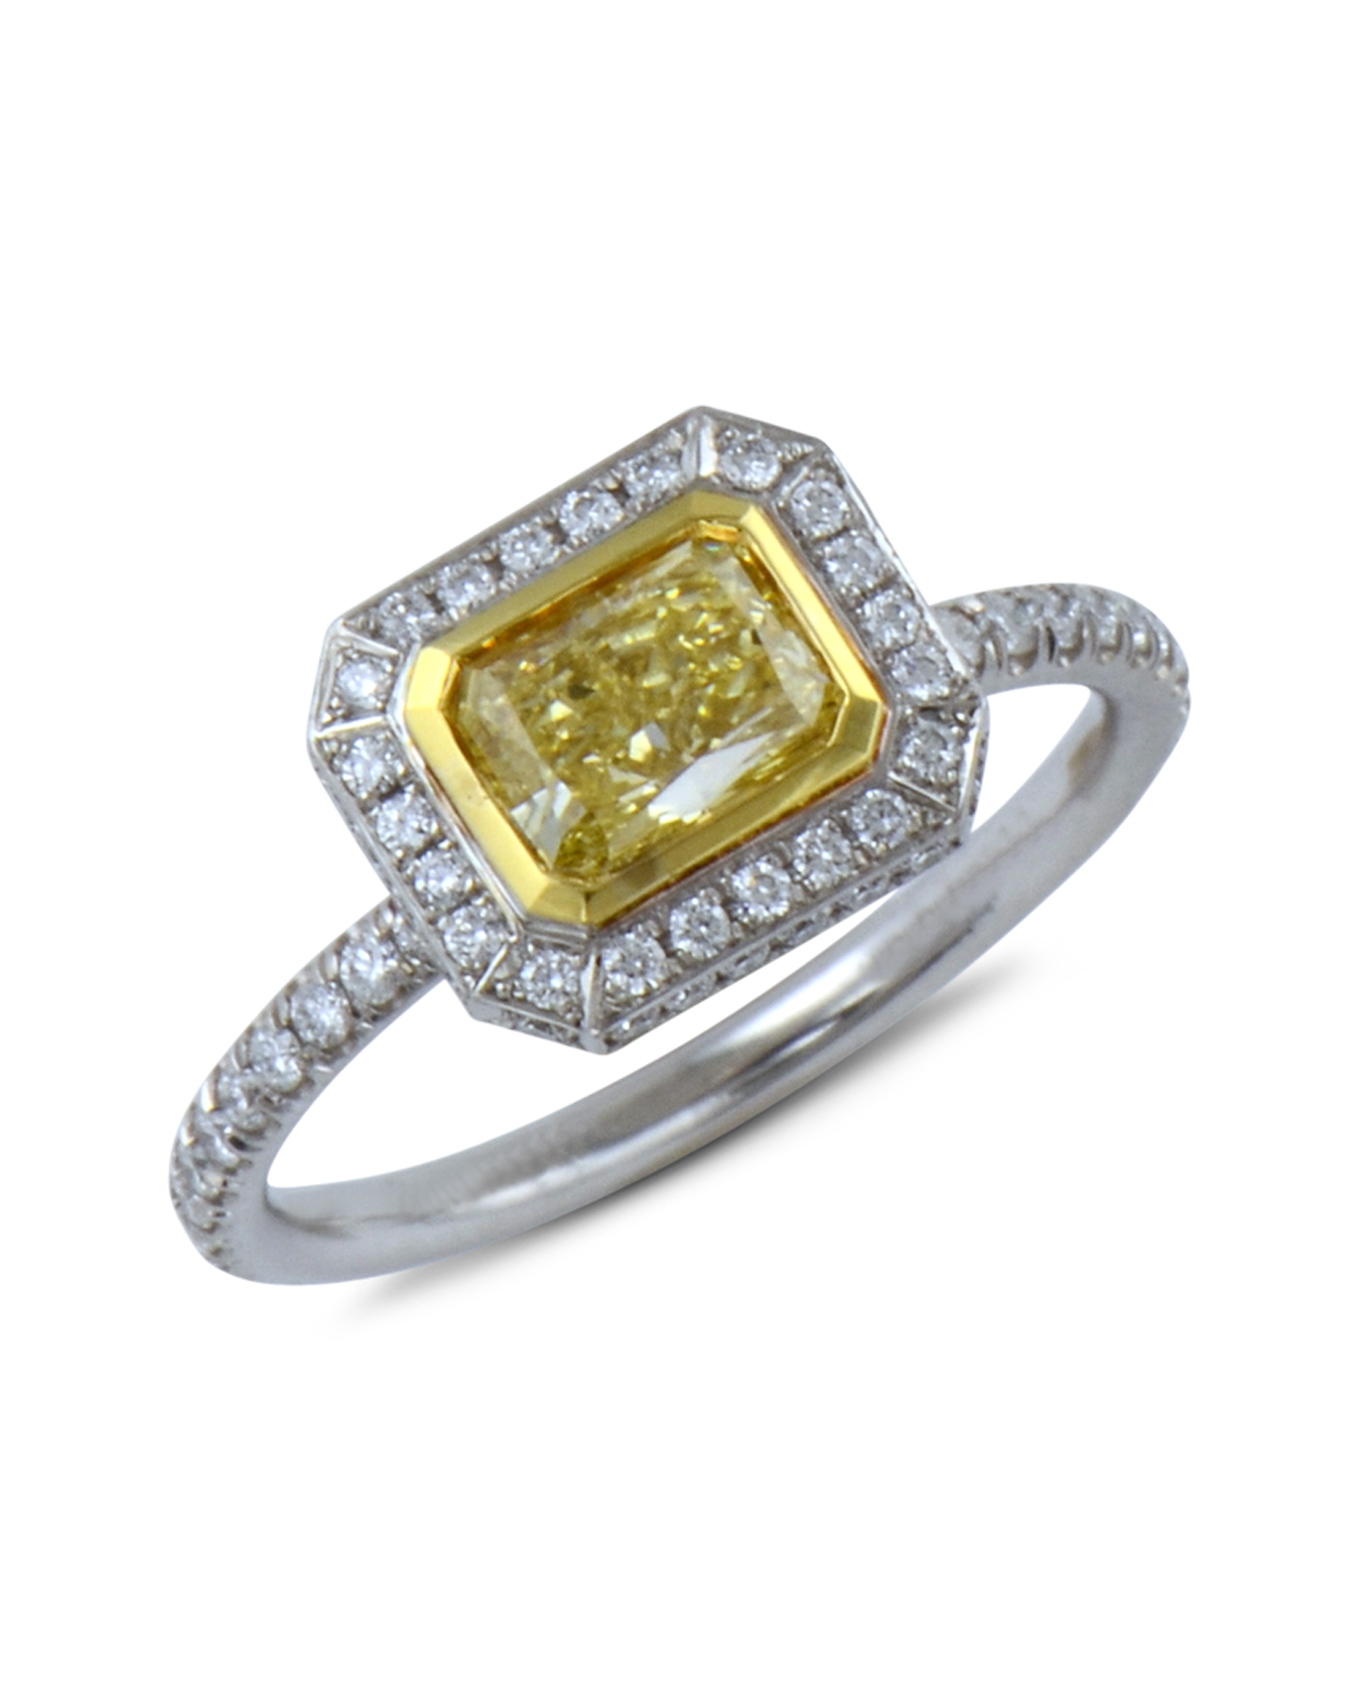 image ring best gia radiant carat jewelry world cut fancy s rings diamond yellow